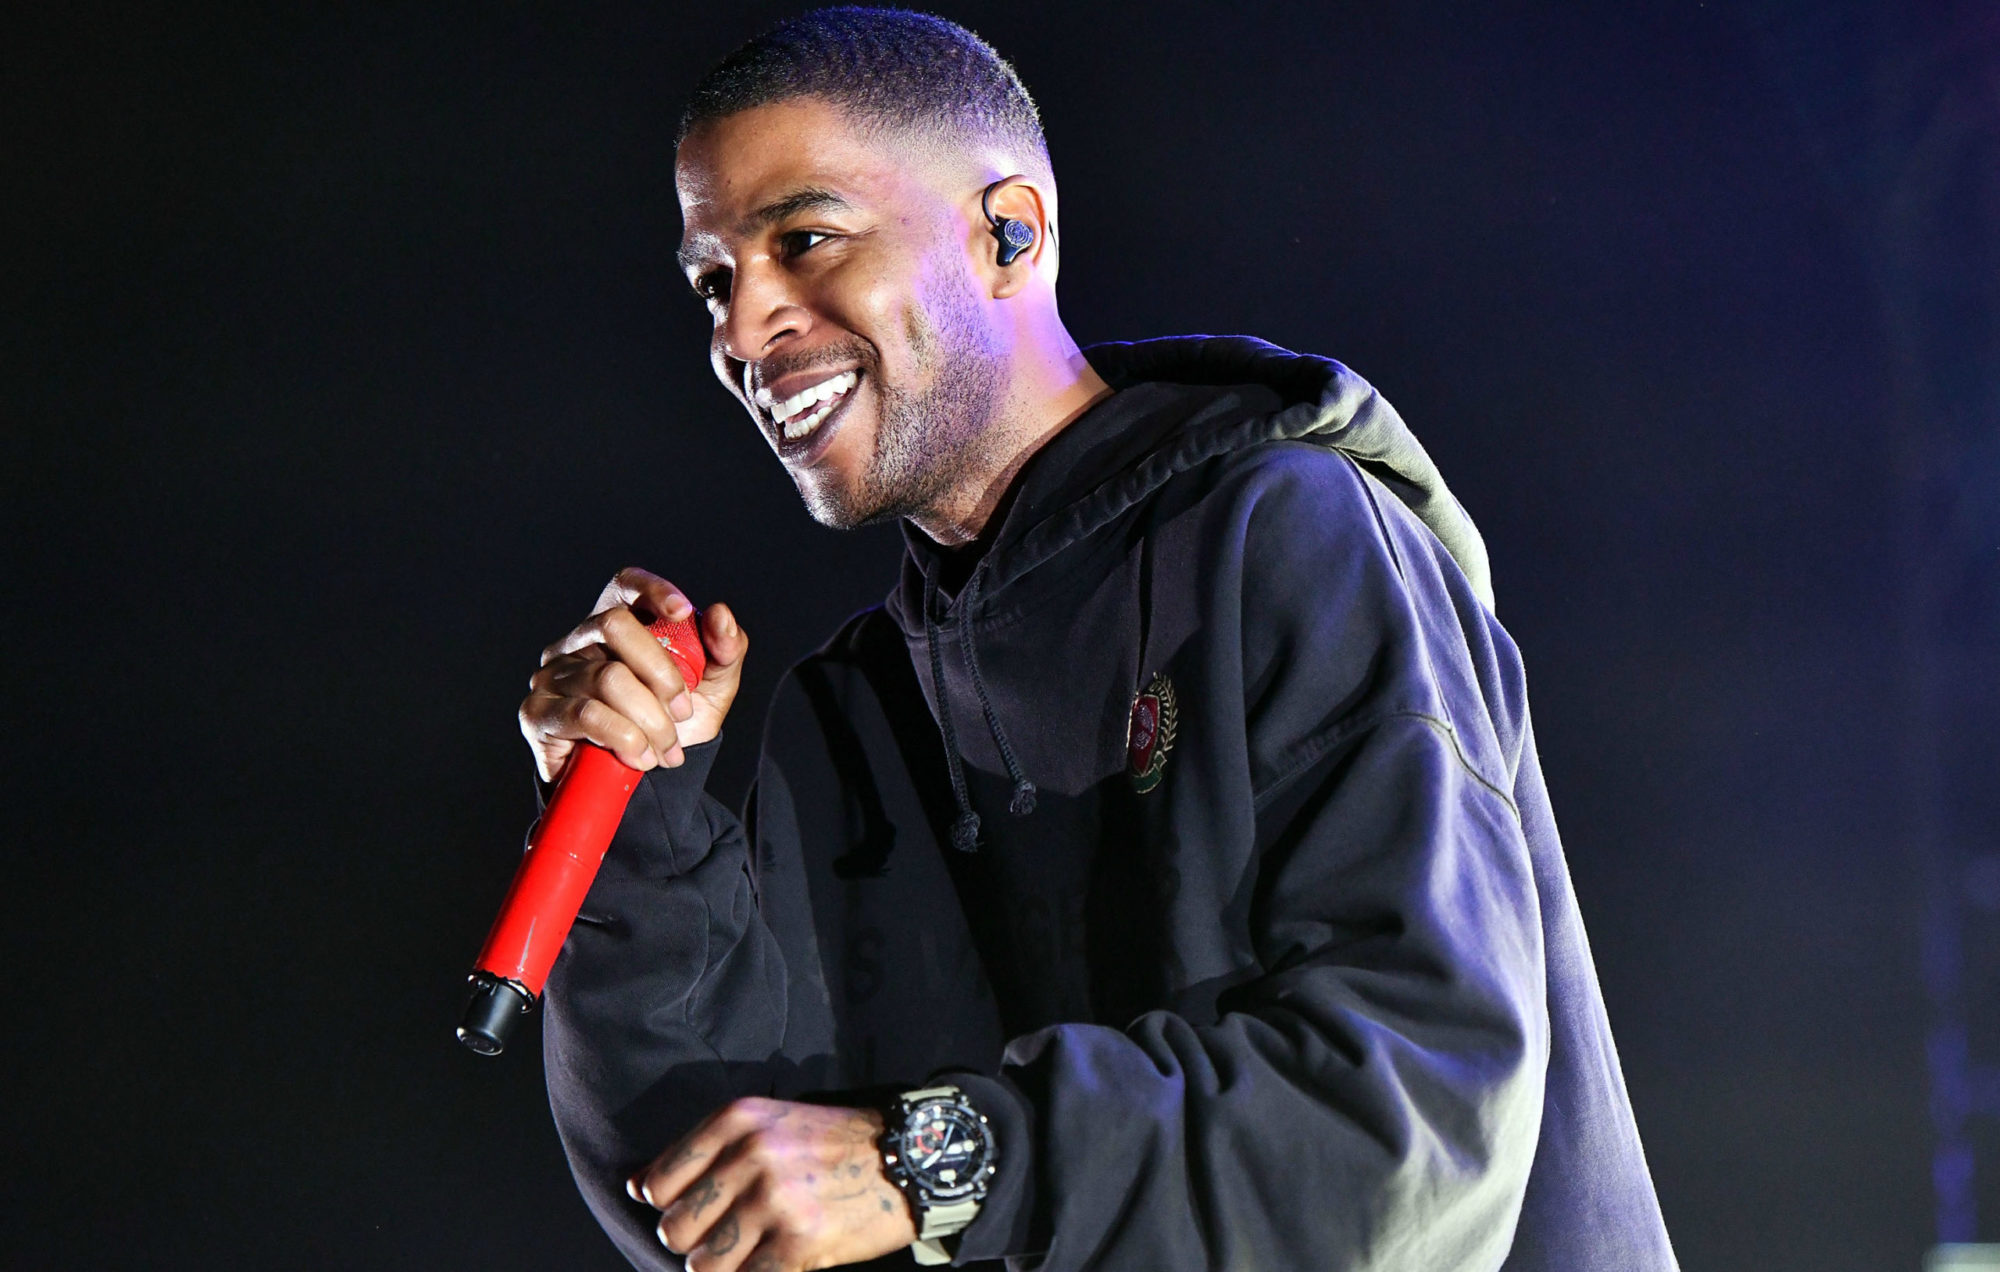 Kid Cudi releases 'Leader Of The Delinquents', his first solo single in three years - EpicNews